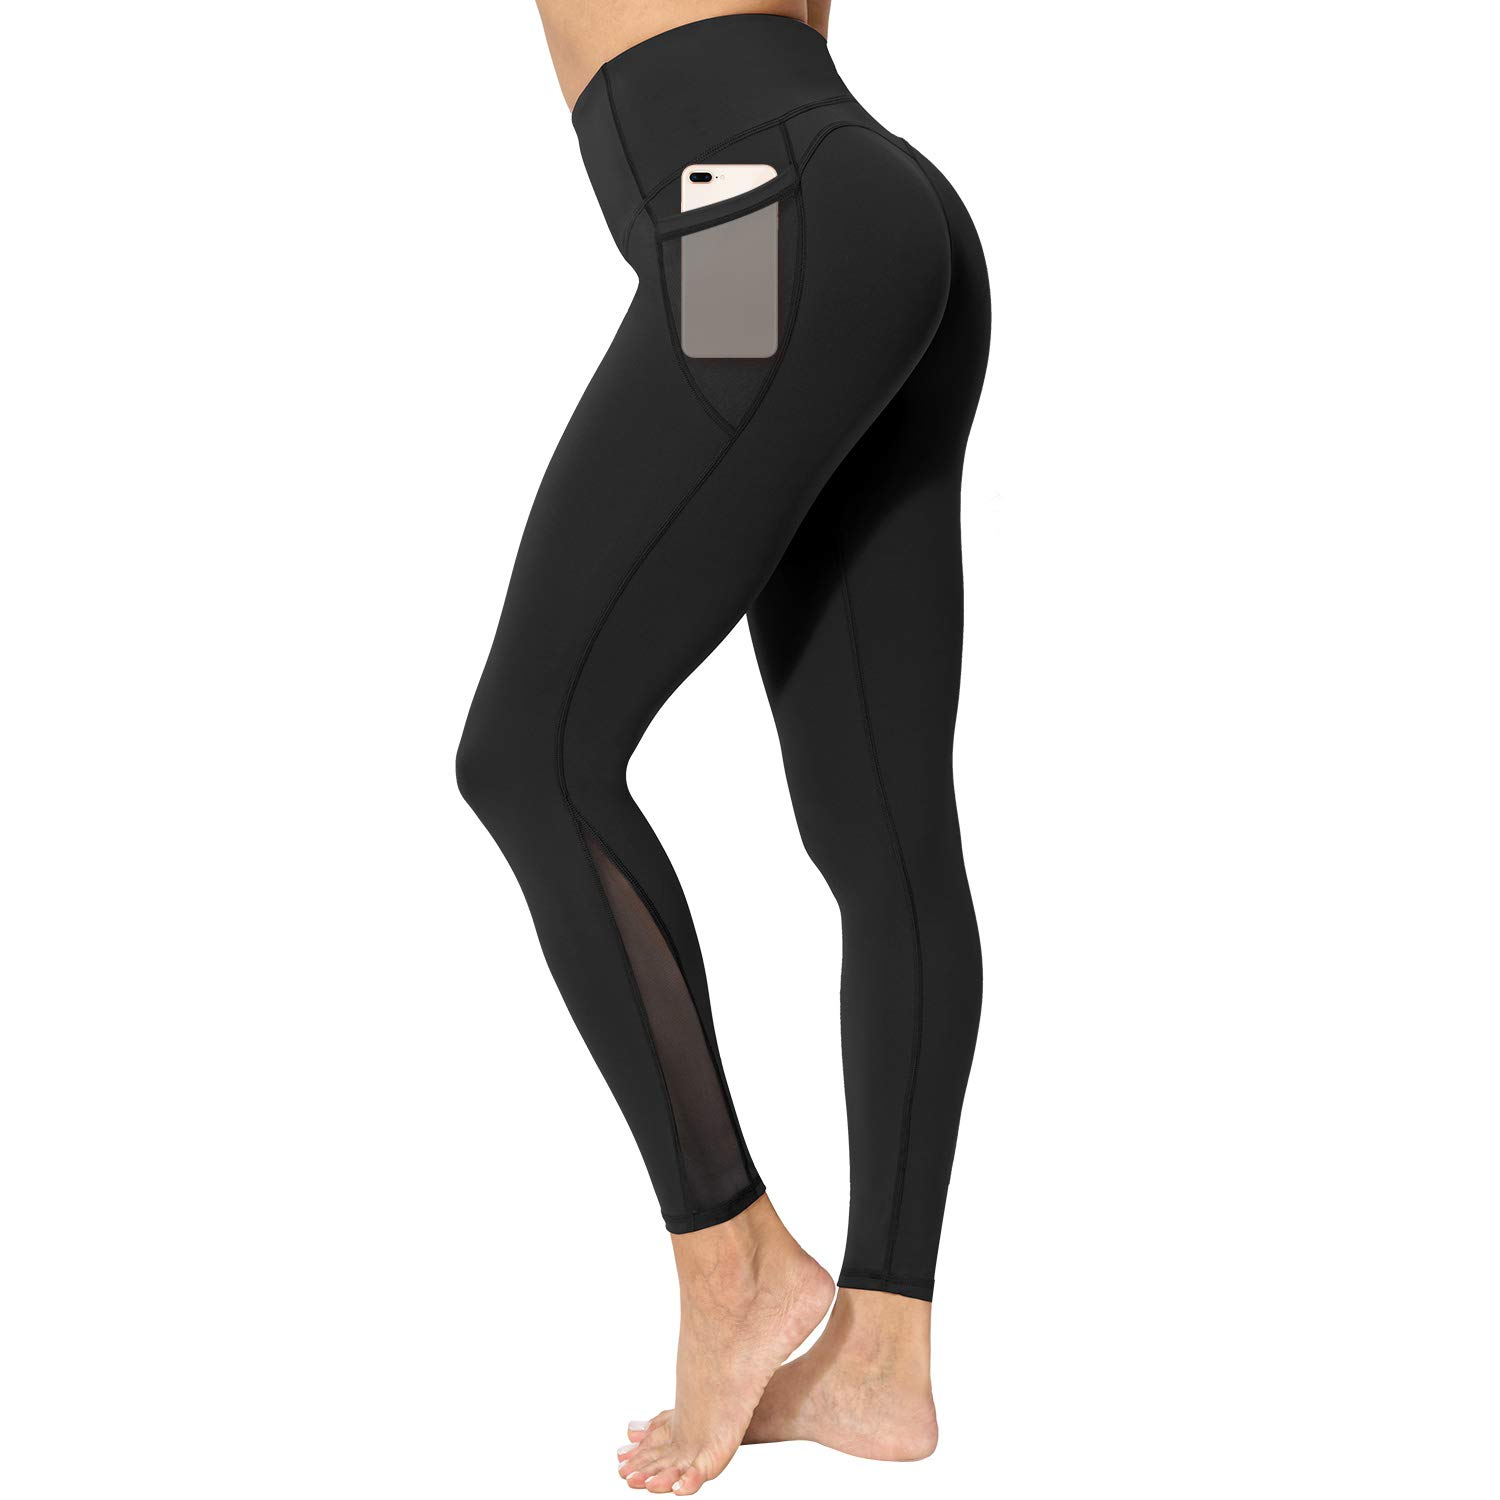 Eono by Womens Seamless Gym Leggings High Waist Yoga Pants Running Trousers Sports Workout Tights